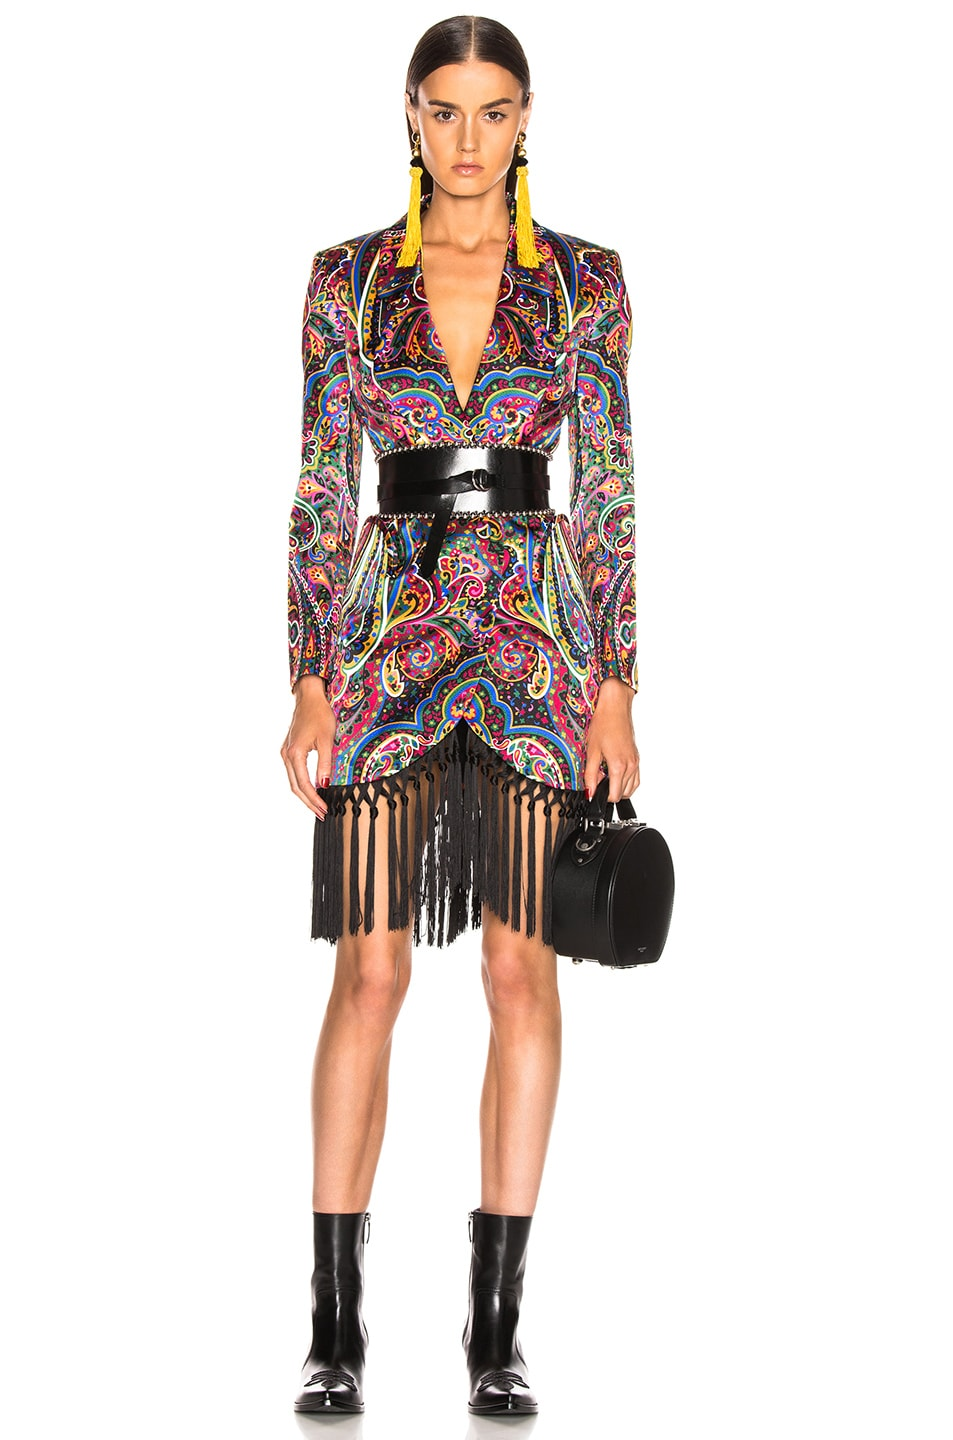 Image 1 of Blaze Milano Irina Sunshine Blazer in Multicolor Paisley